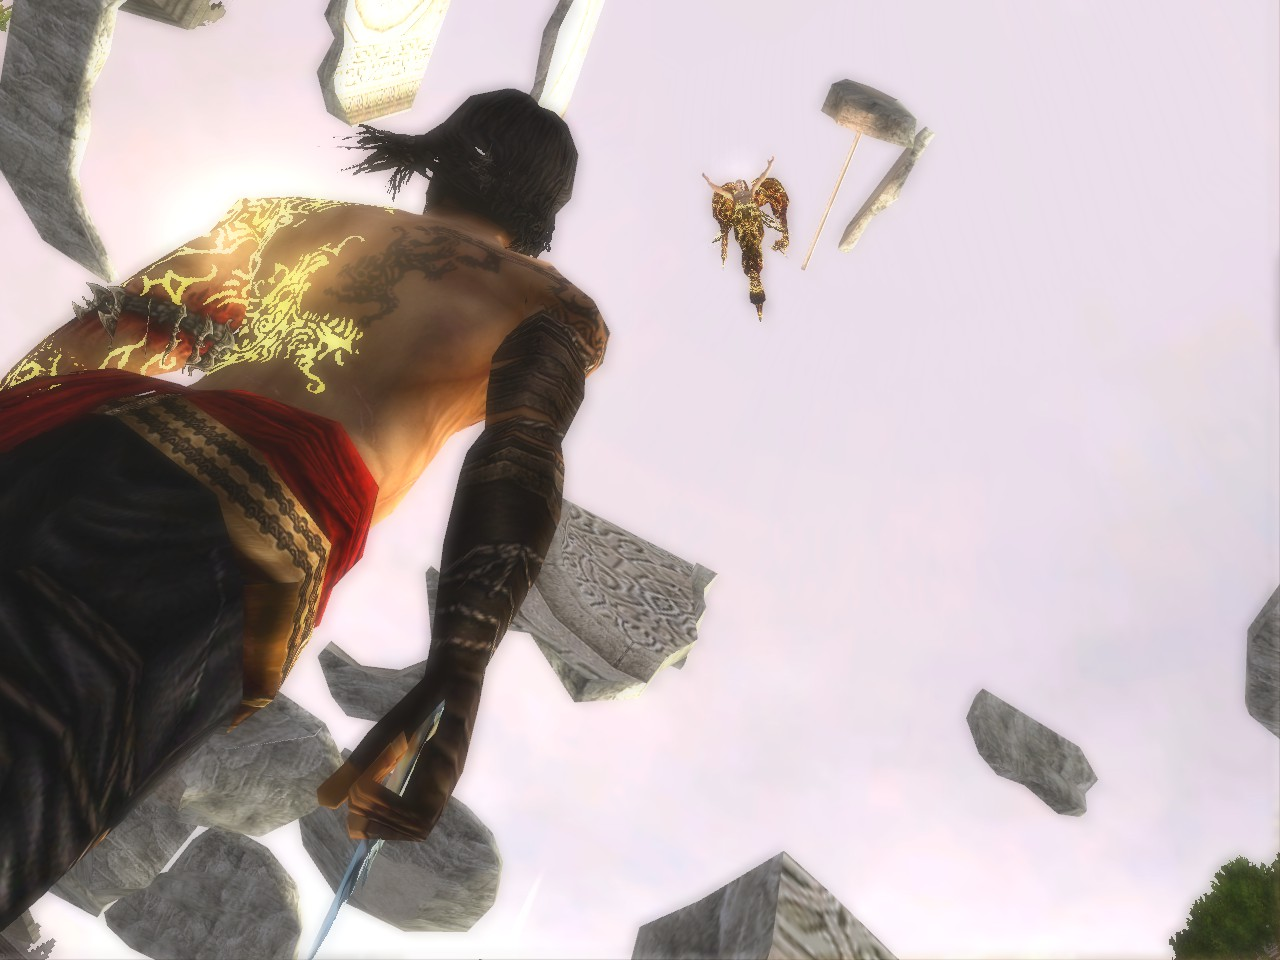 POP3 2014-06-01 22-22-50-04.jpg - Prince of Persia: The Two Thrones